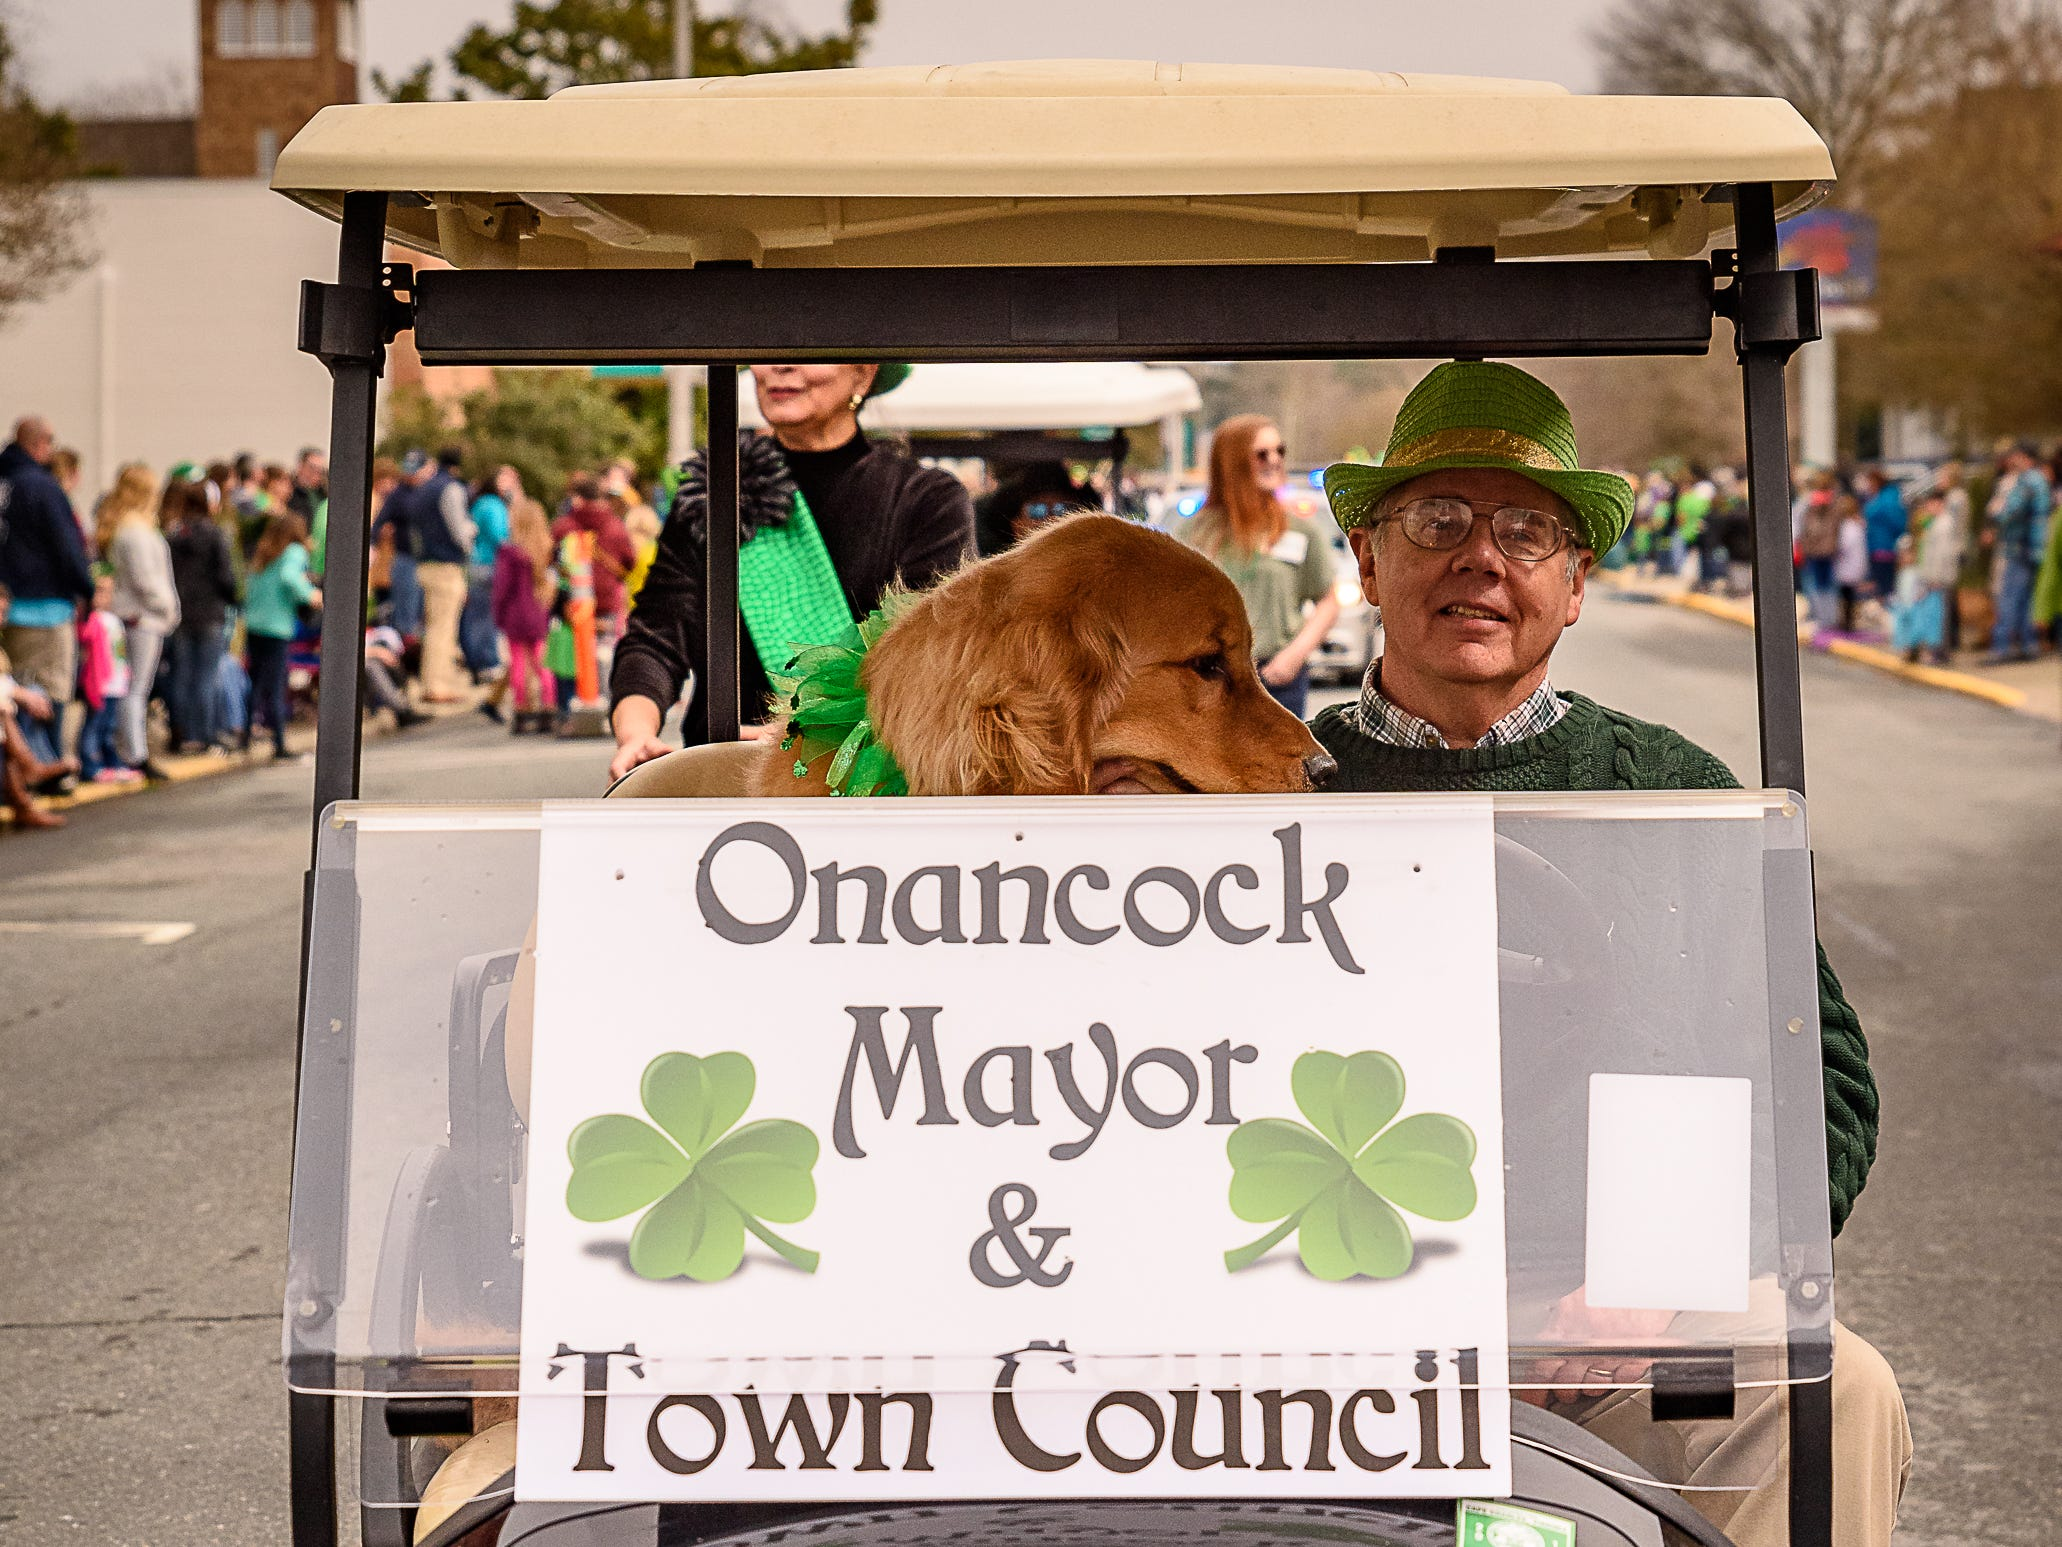 Onancock Mayor Fletcher Fosque shares his golf cart with man's best friend during the St. Patrick's parade on Sunday.